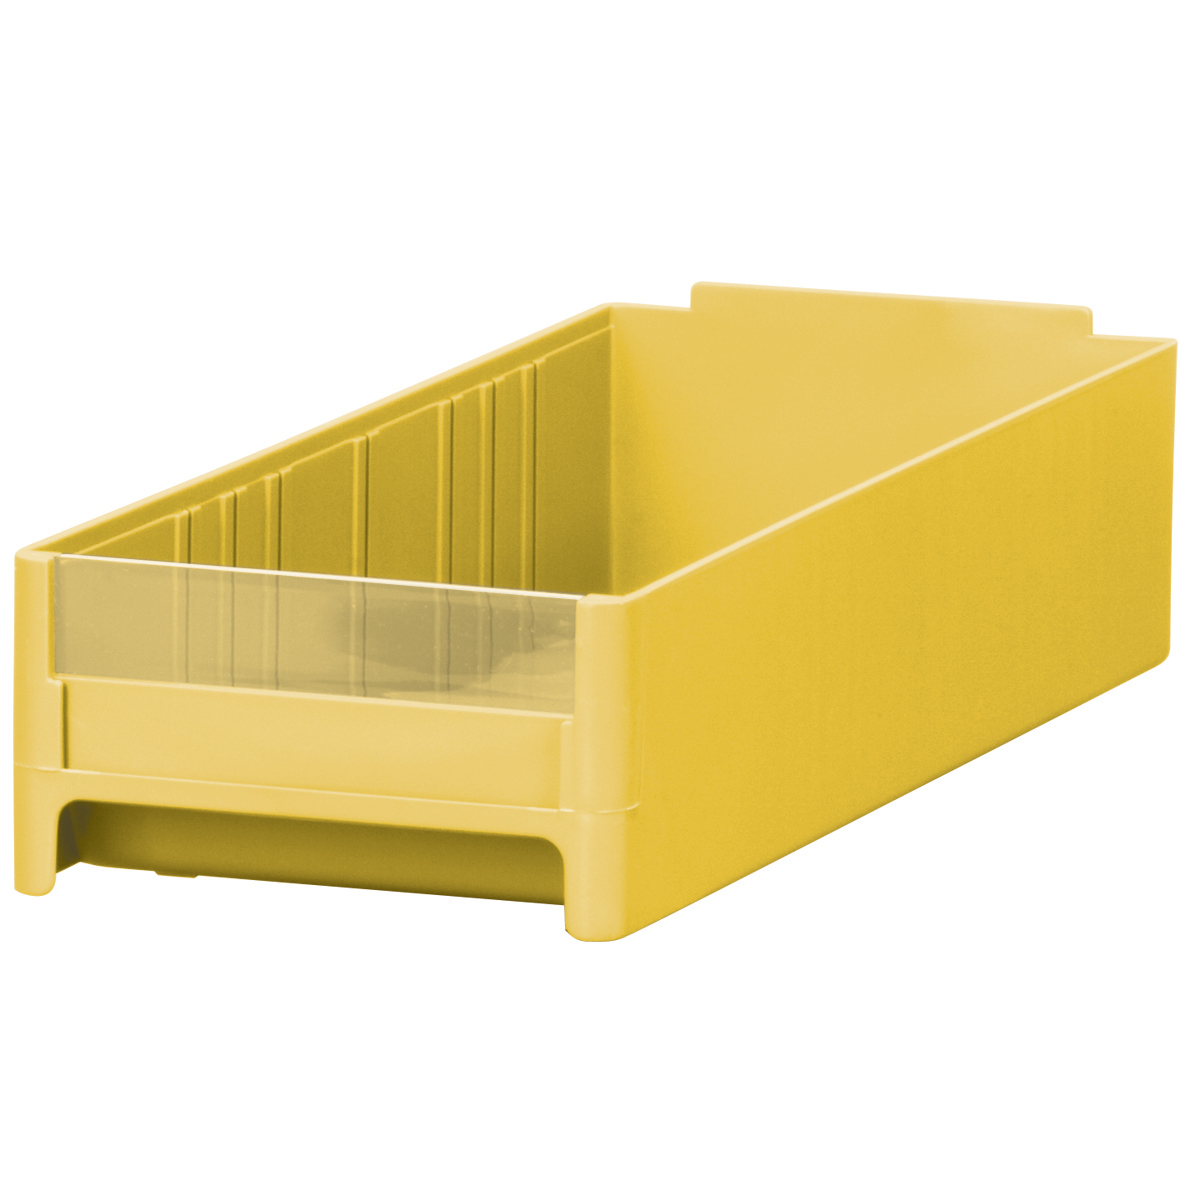 19-Series Cabinet Drawer 4 x 2-1/16 x 10-9/16, Yellow.  This item sold in carton quantities of 32.